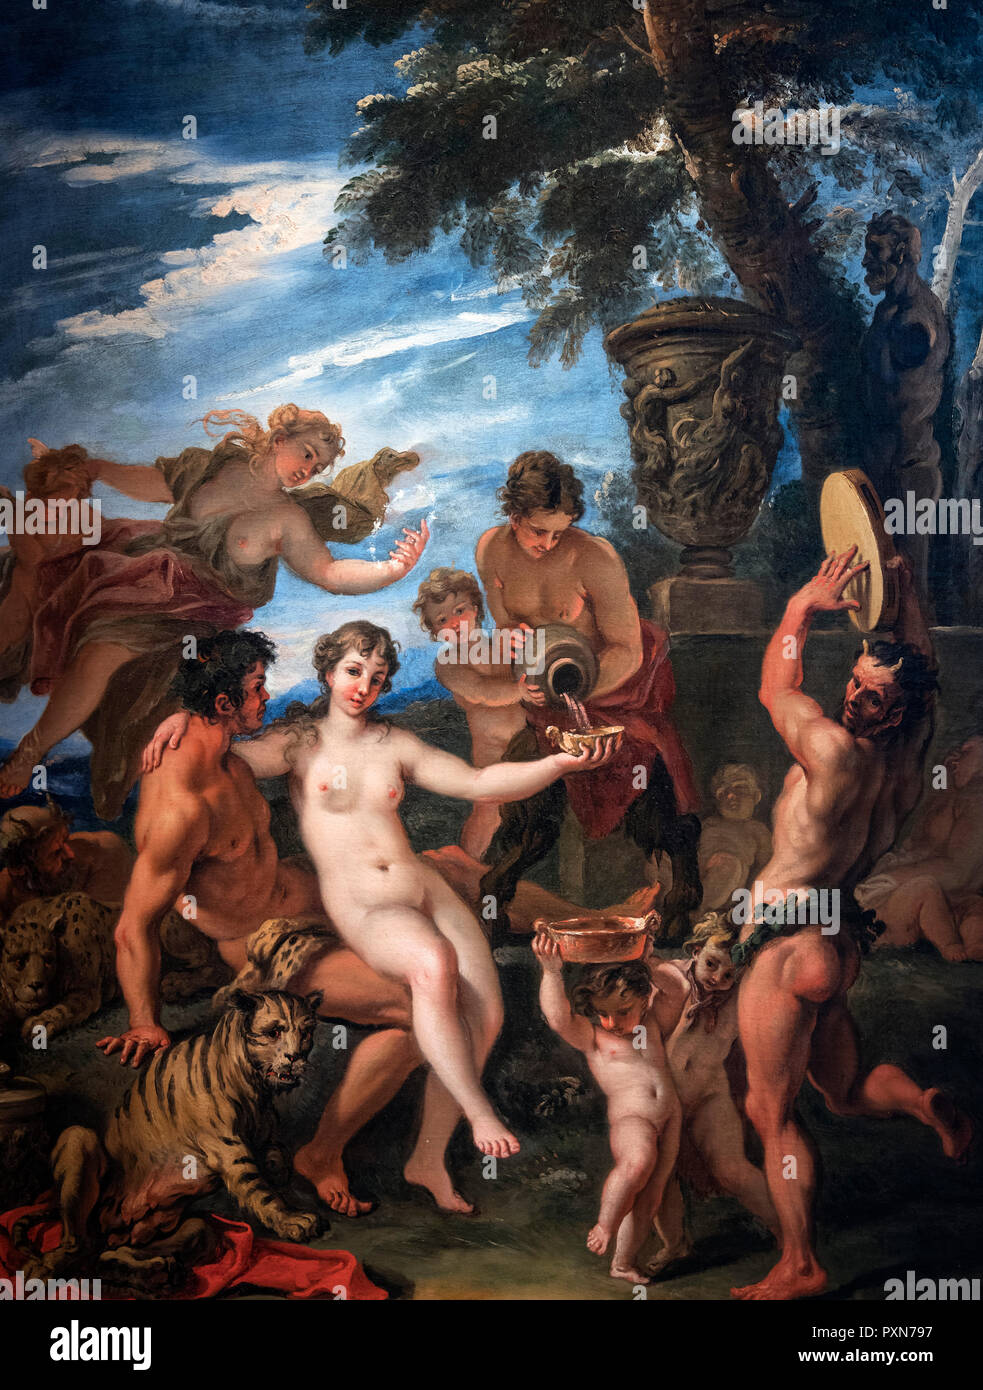 Bacchus and Ariadne by Sebastiano Ricci (1659-1734), oil on canvas, c.1691-4. The painting depicts the wedding of Bacchus (or Dionysus), the God of Wine and Ariadne, daughter of King Minos of Crete. - Stock Image